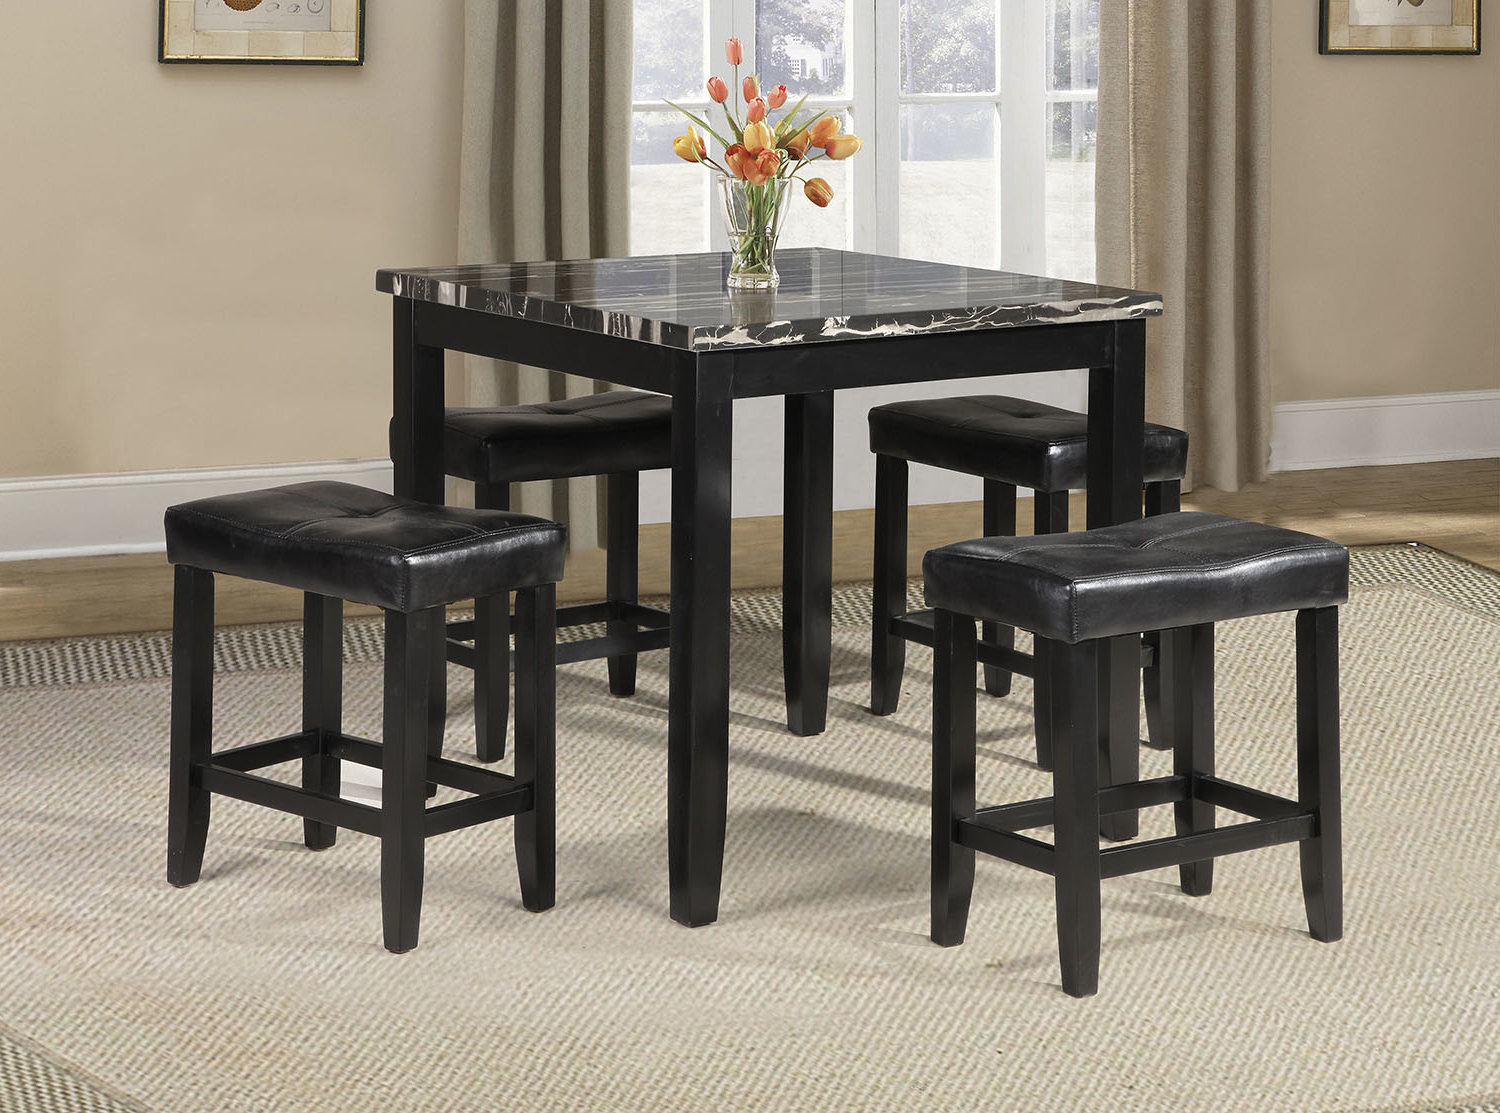 Mizpah 3 Piece Counter Height Dining Sets With Well Known Winston Porter Rayle 5 Piece Counter Height Dining Set (View 15 of 25)